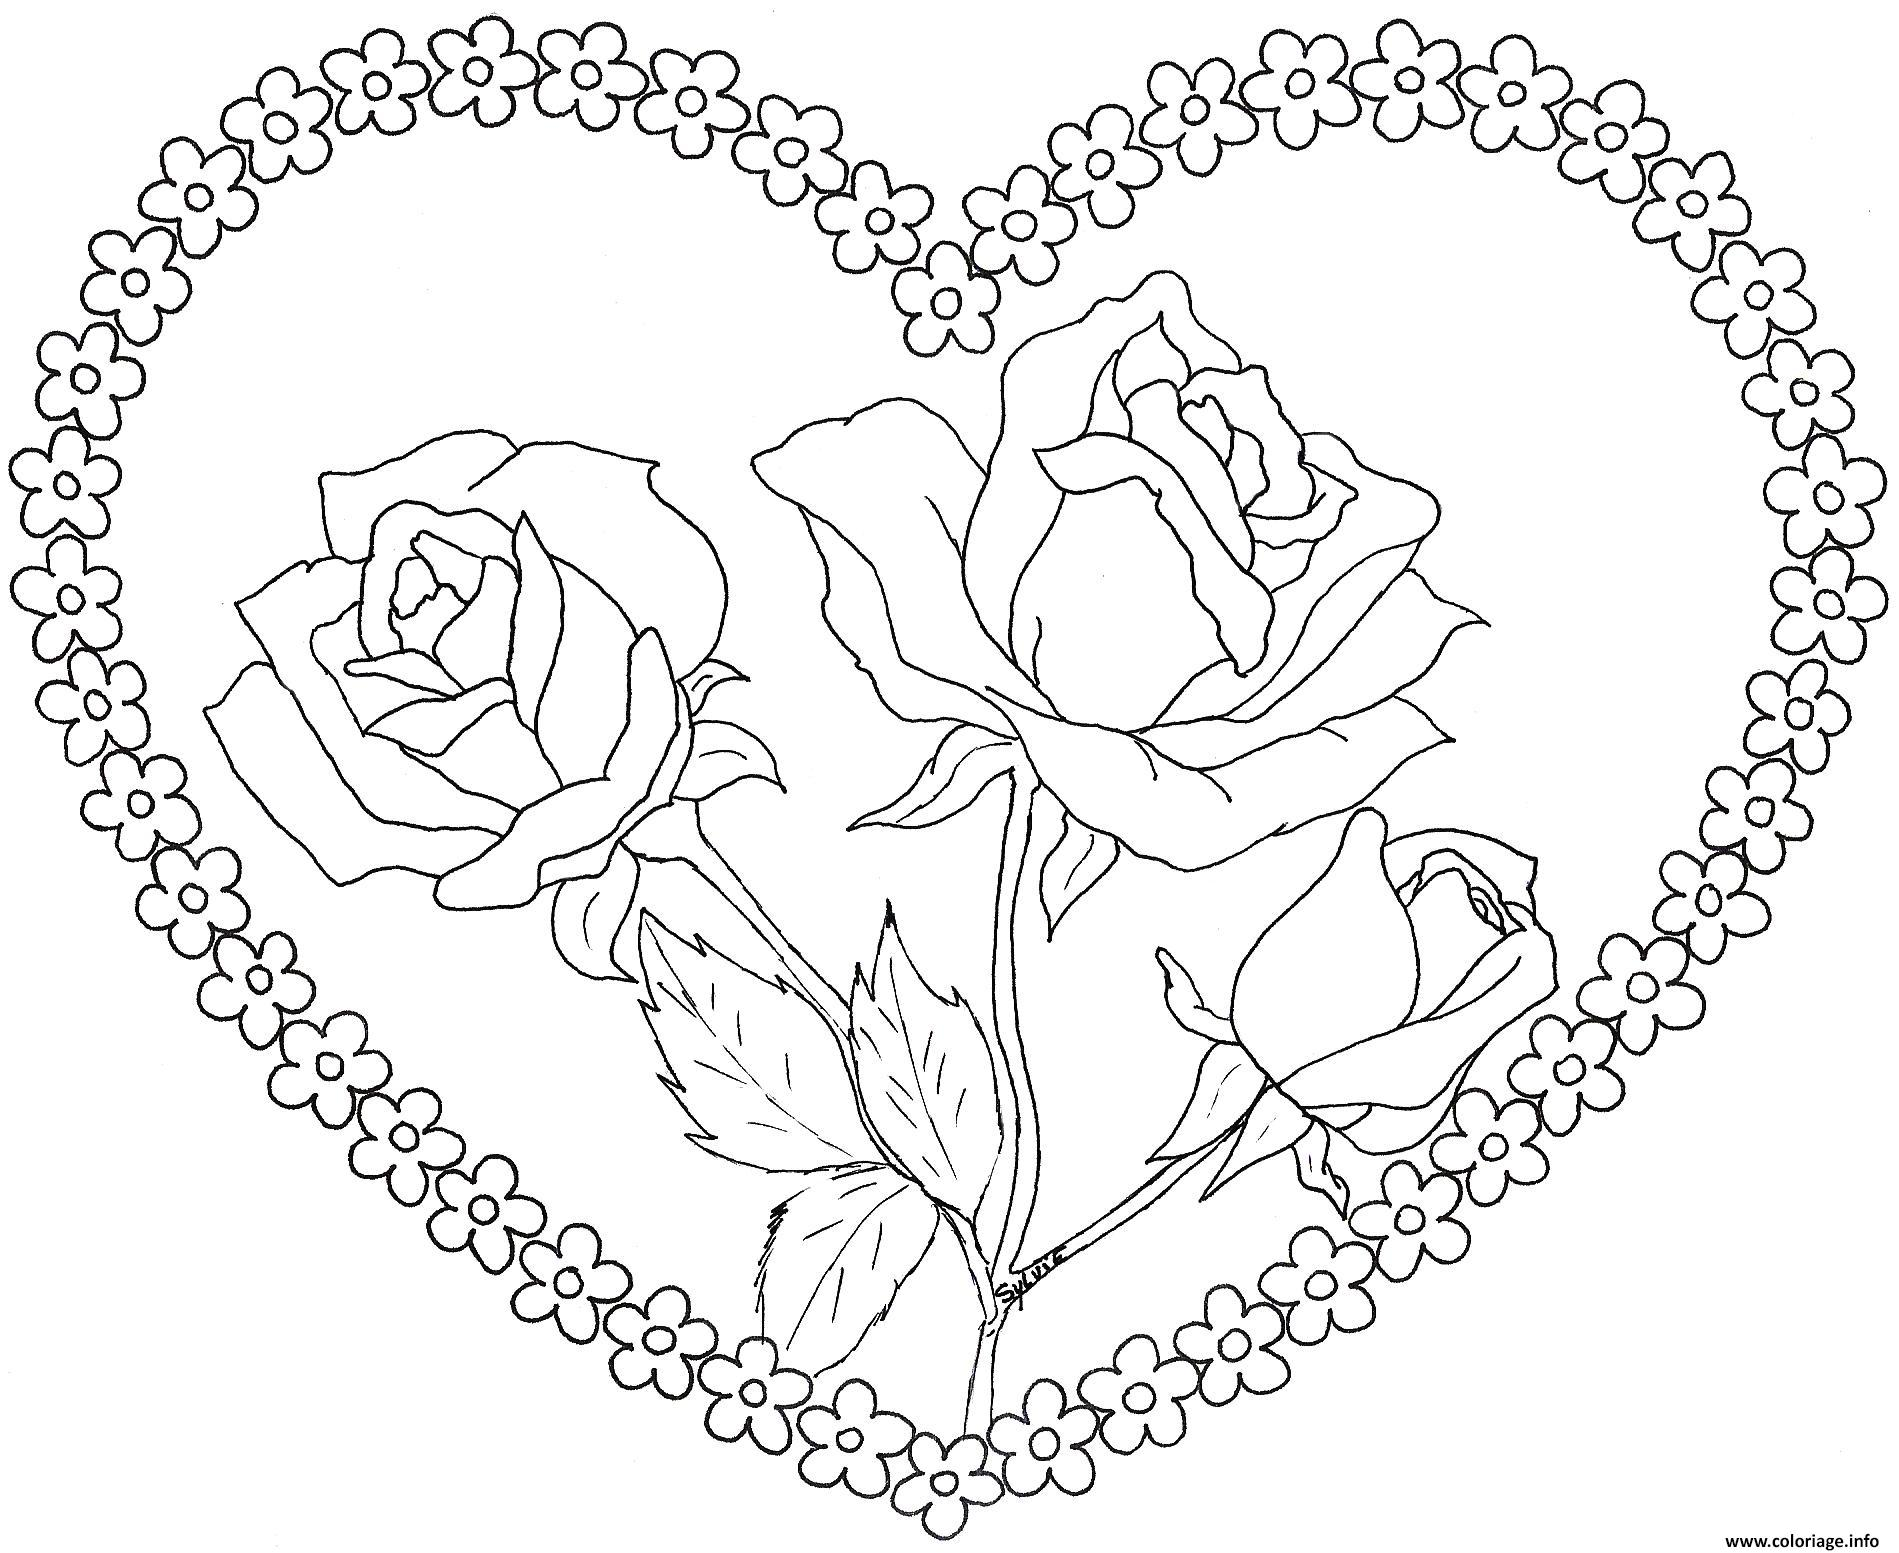 coloriage dessin coeur saint valentin avec roses dessin. Black Bedroom Furniture Sets. Home Design Ideas